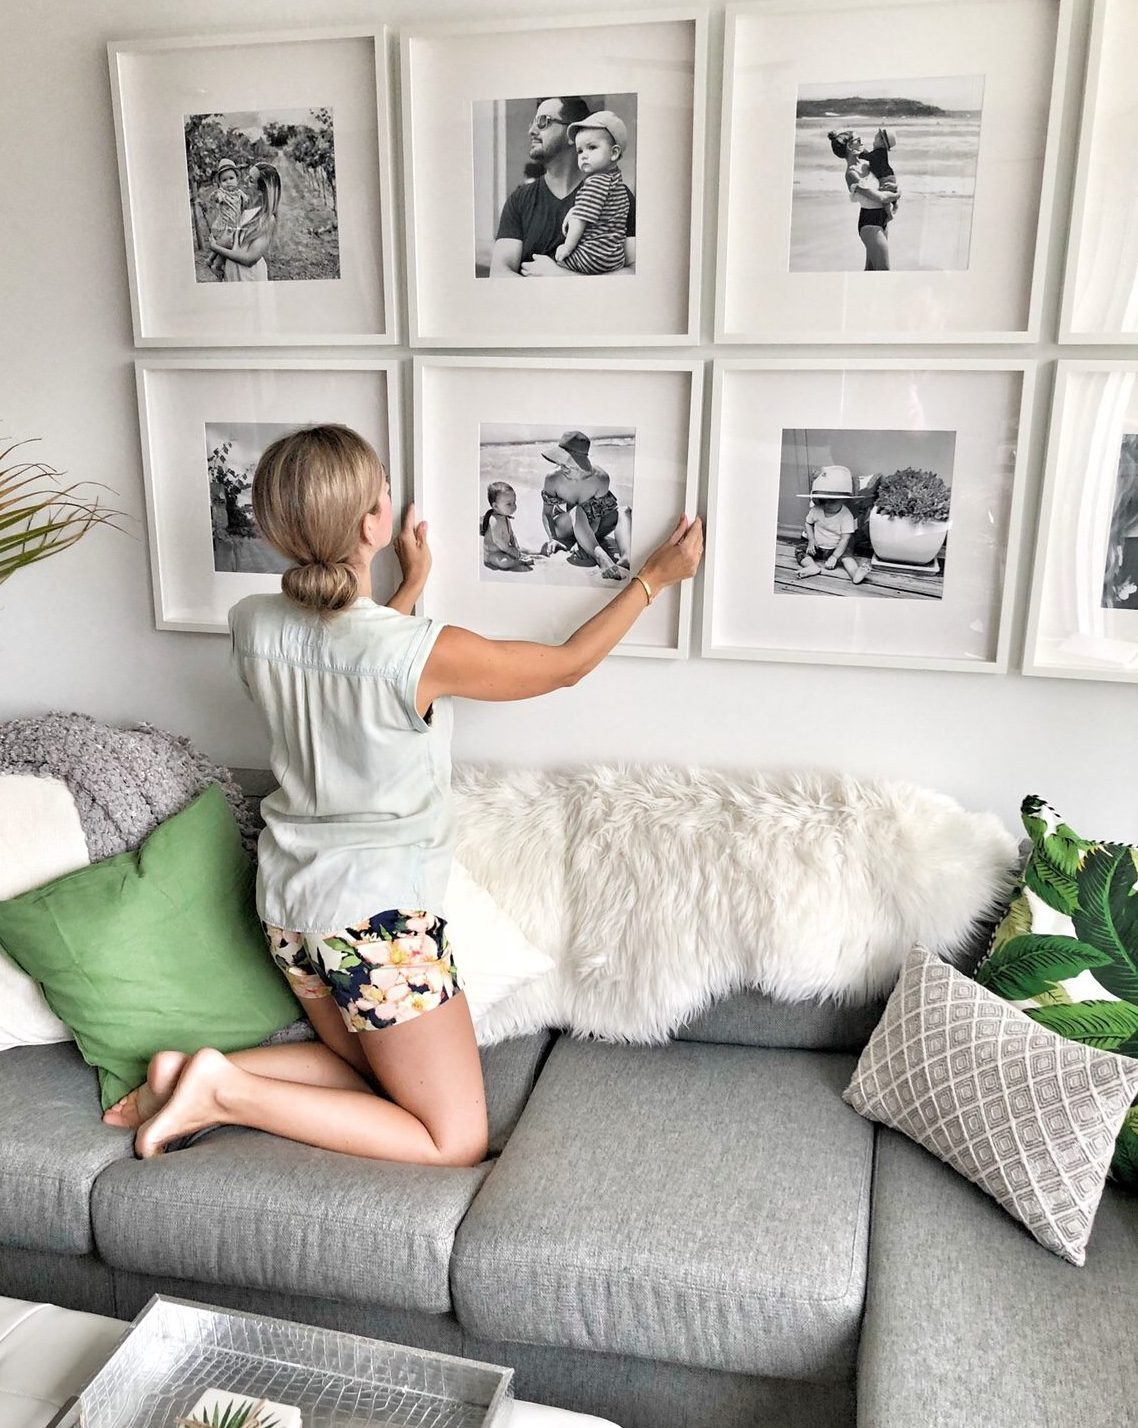 Ikea Wall Frames Uk How To Create A Grid Style Gallery Wall Of Family Photos